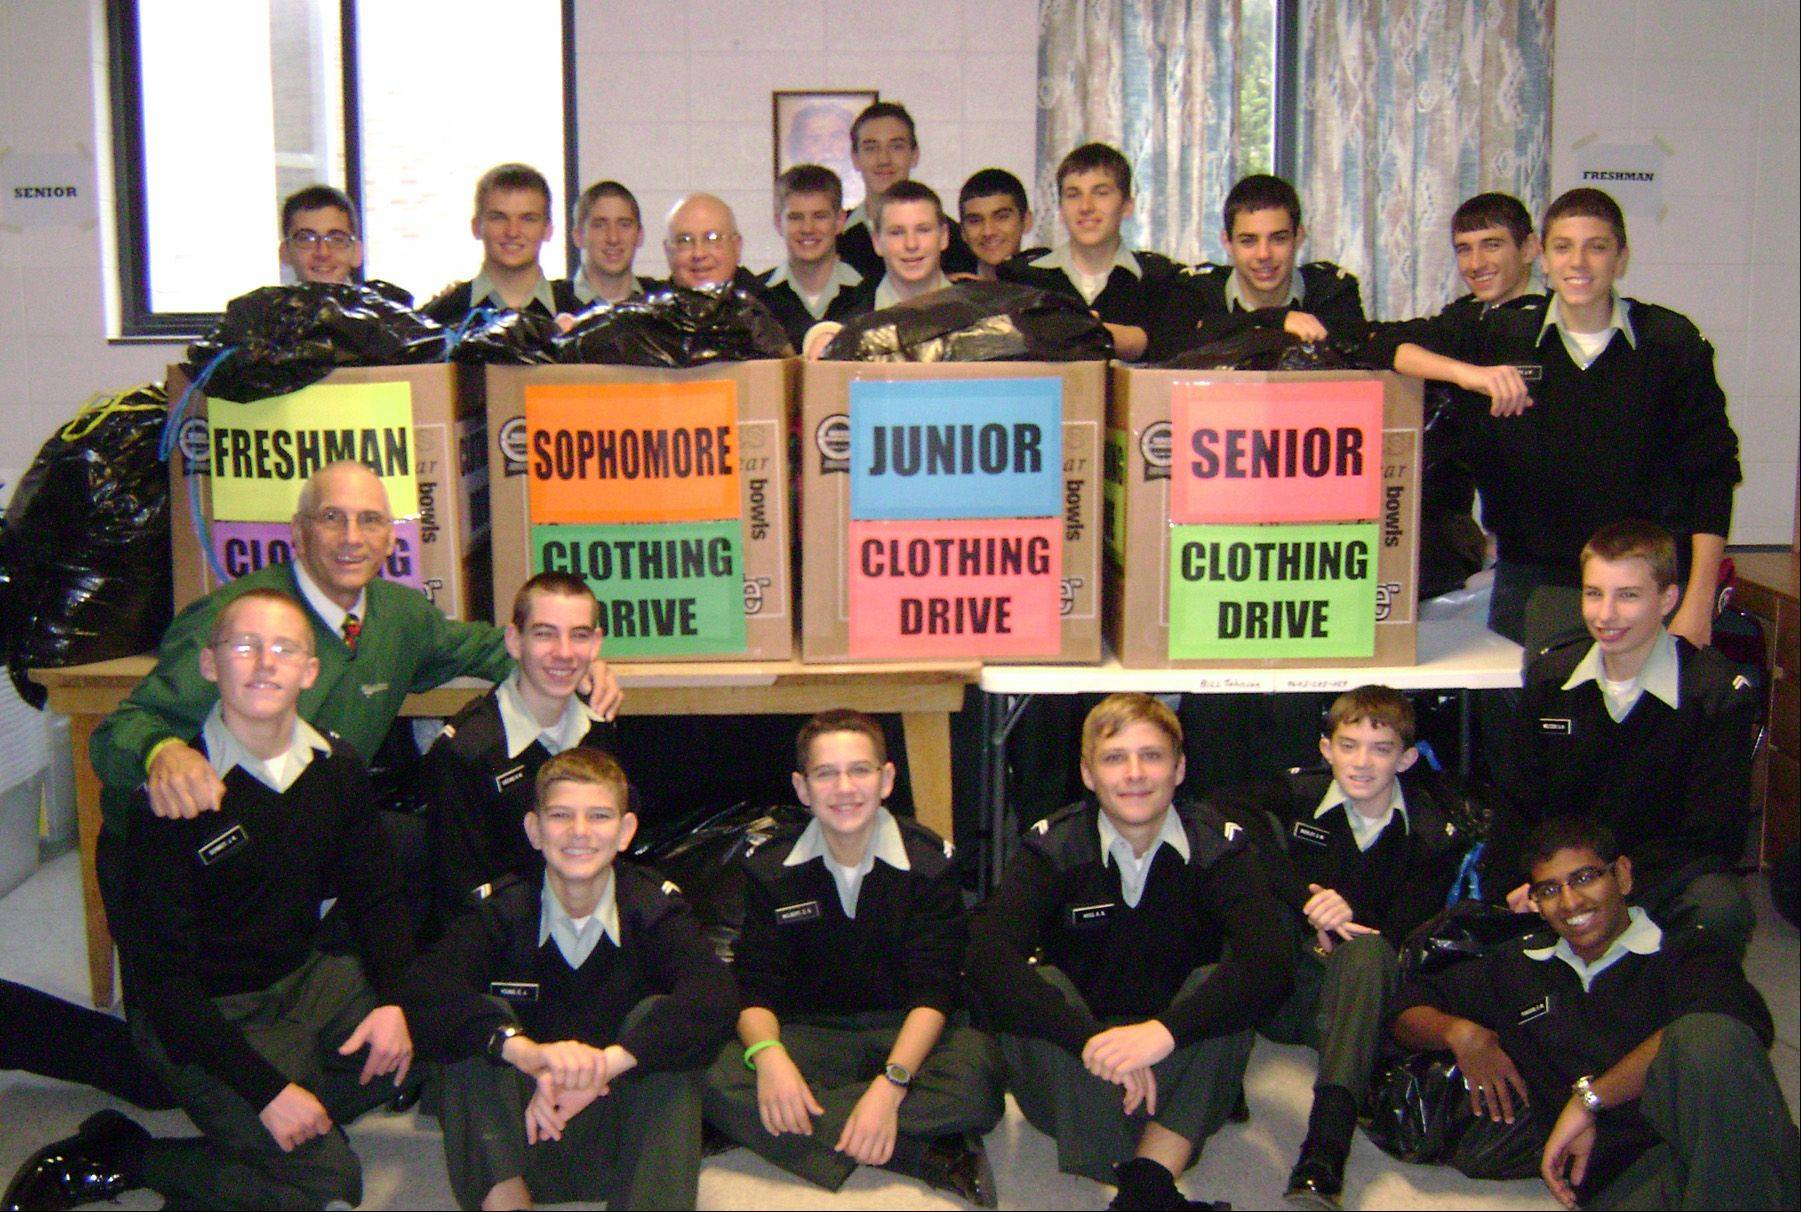 Marmion Academy Campus Ministry Director Bill Johnson, Student Chaplain the Rev. Michael Burrows and Marmion students are grateful for the success of their Winter Clothing Drive, which collected more than 3,000 of clothing for needy residents.